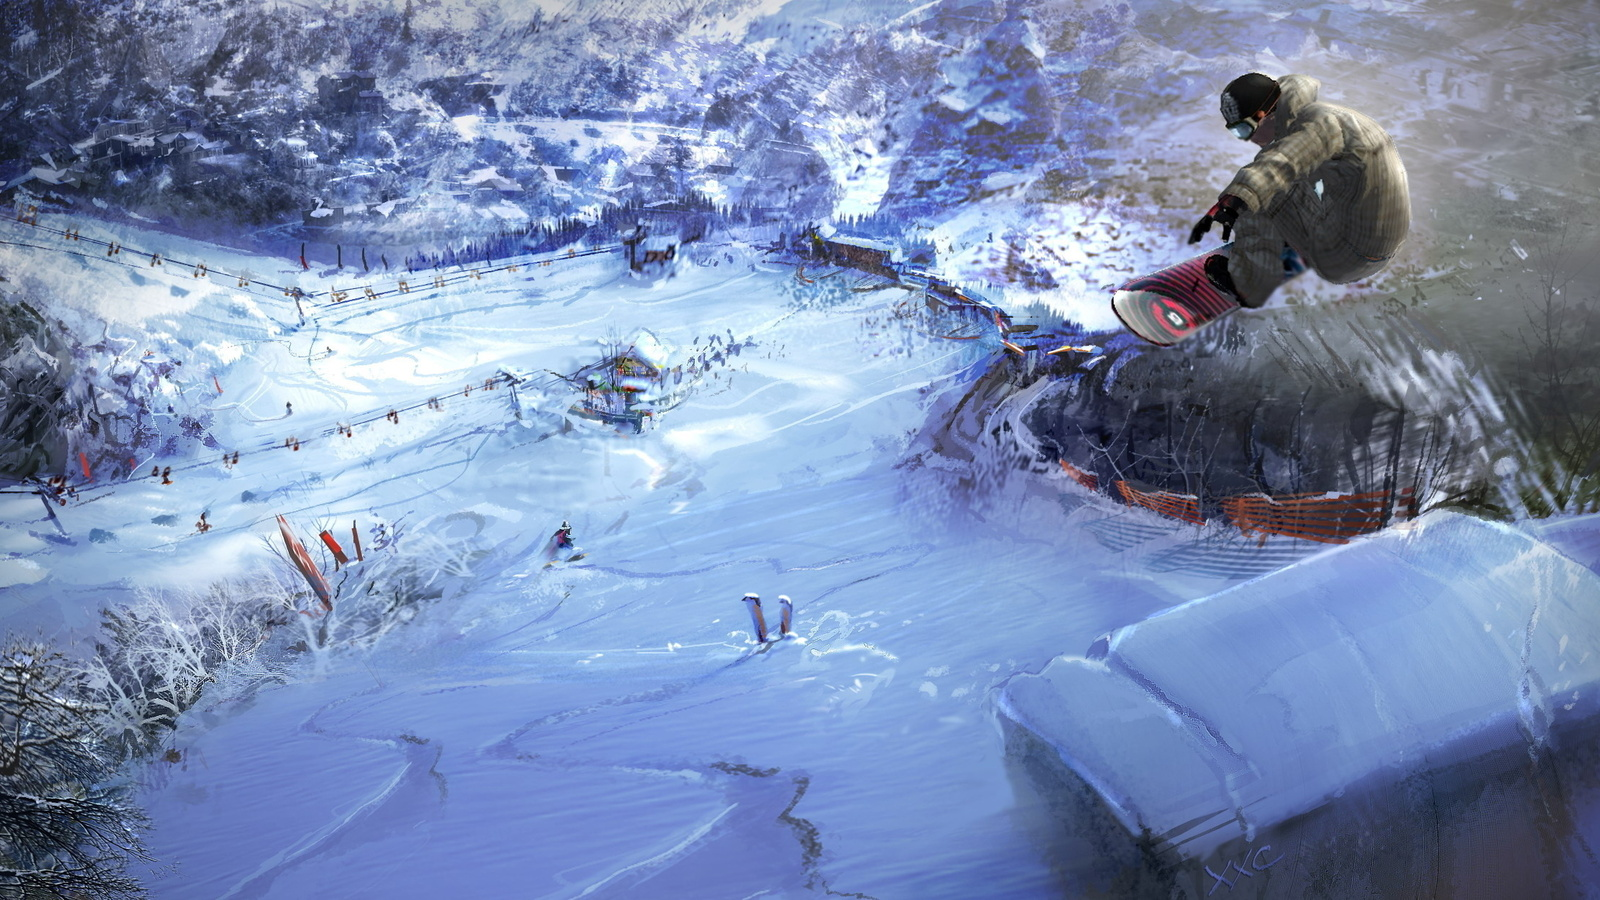 1600x900 - Snowboarding Wallpapers 30